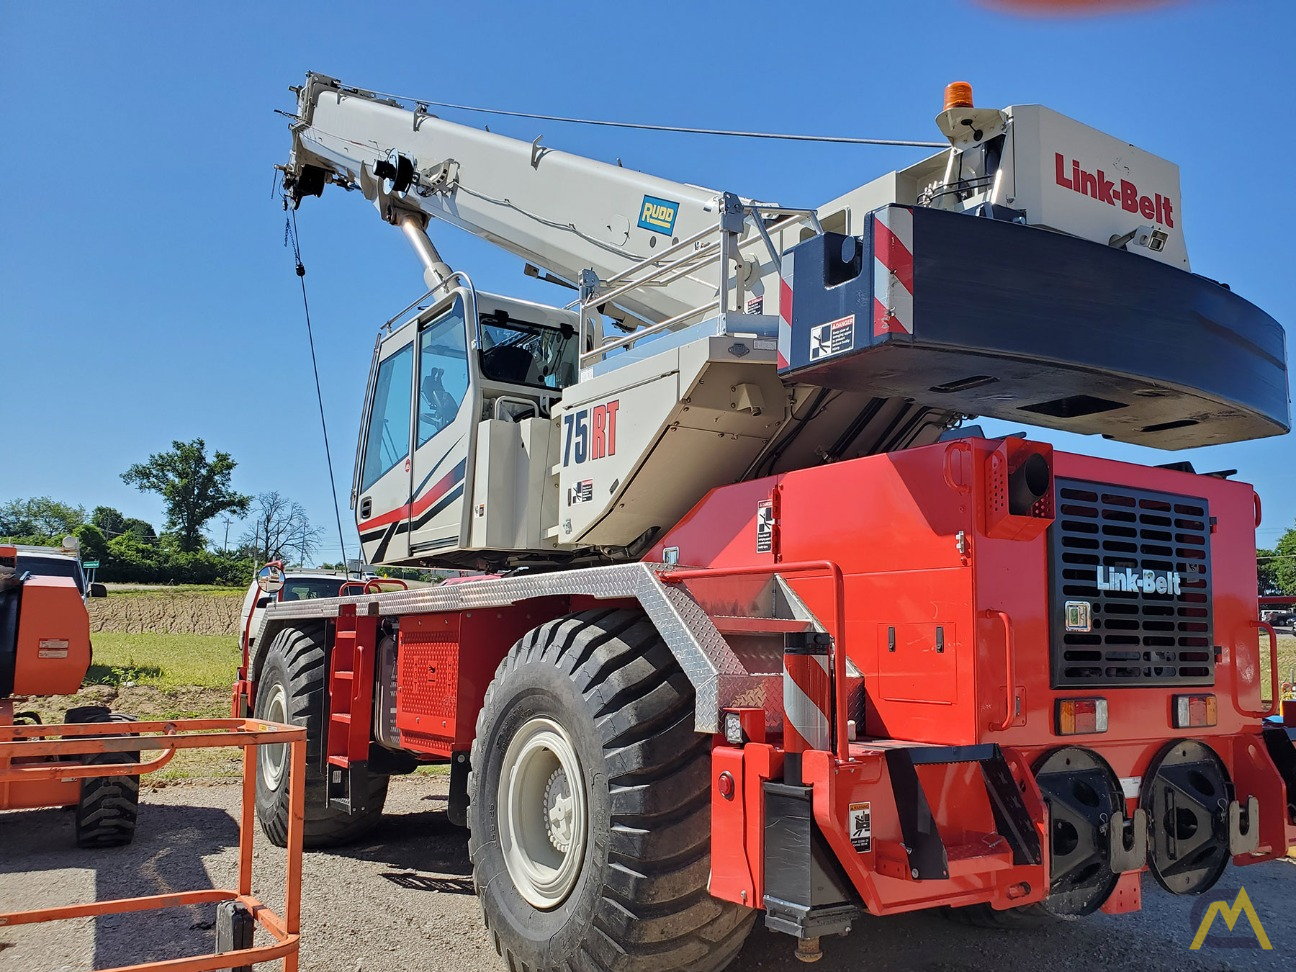 Link-Belt 75RT 75-ton Rough Terrain Crane 2